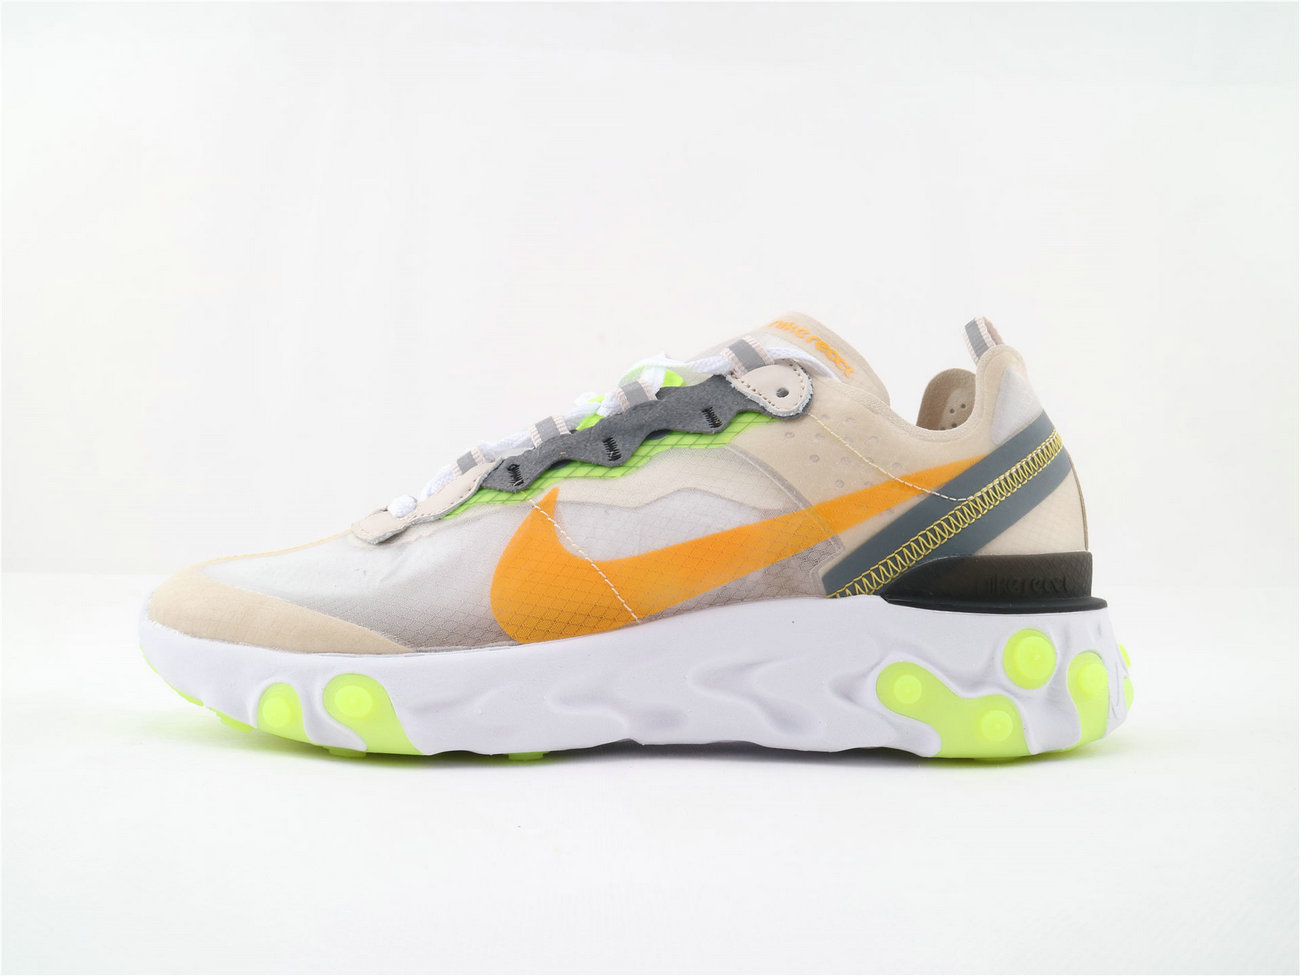 Where To Buy Womens Nike React Element 87 Undercover LT Orewood Brn Laser Orange AQ1090 101